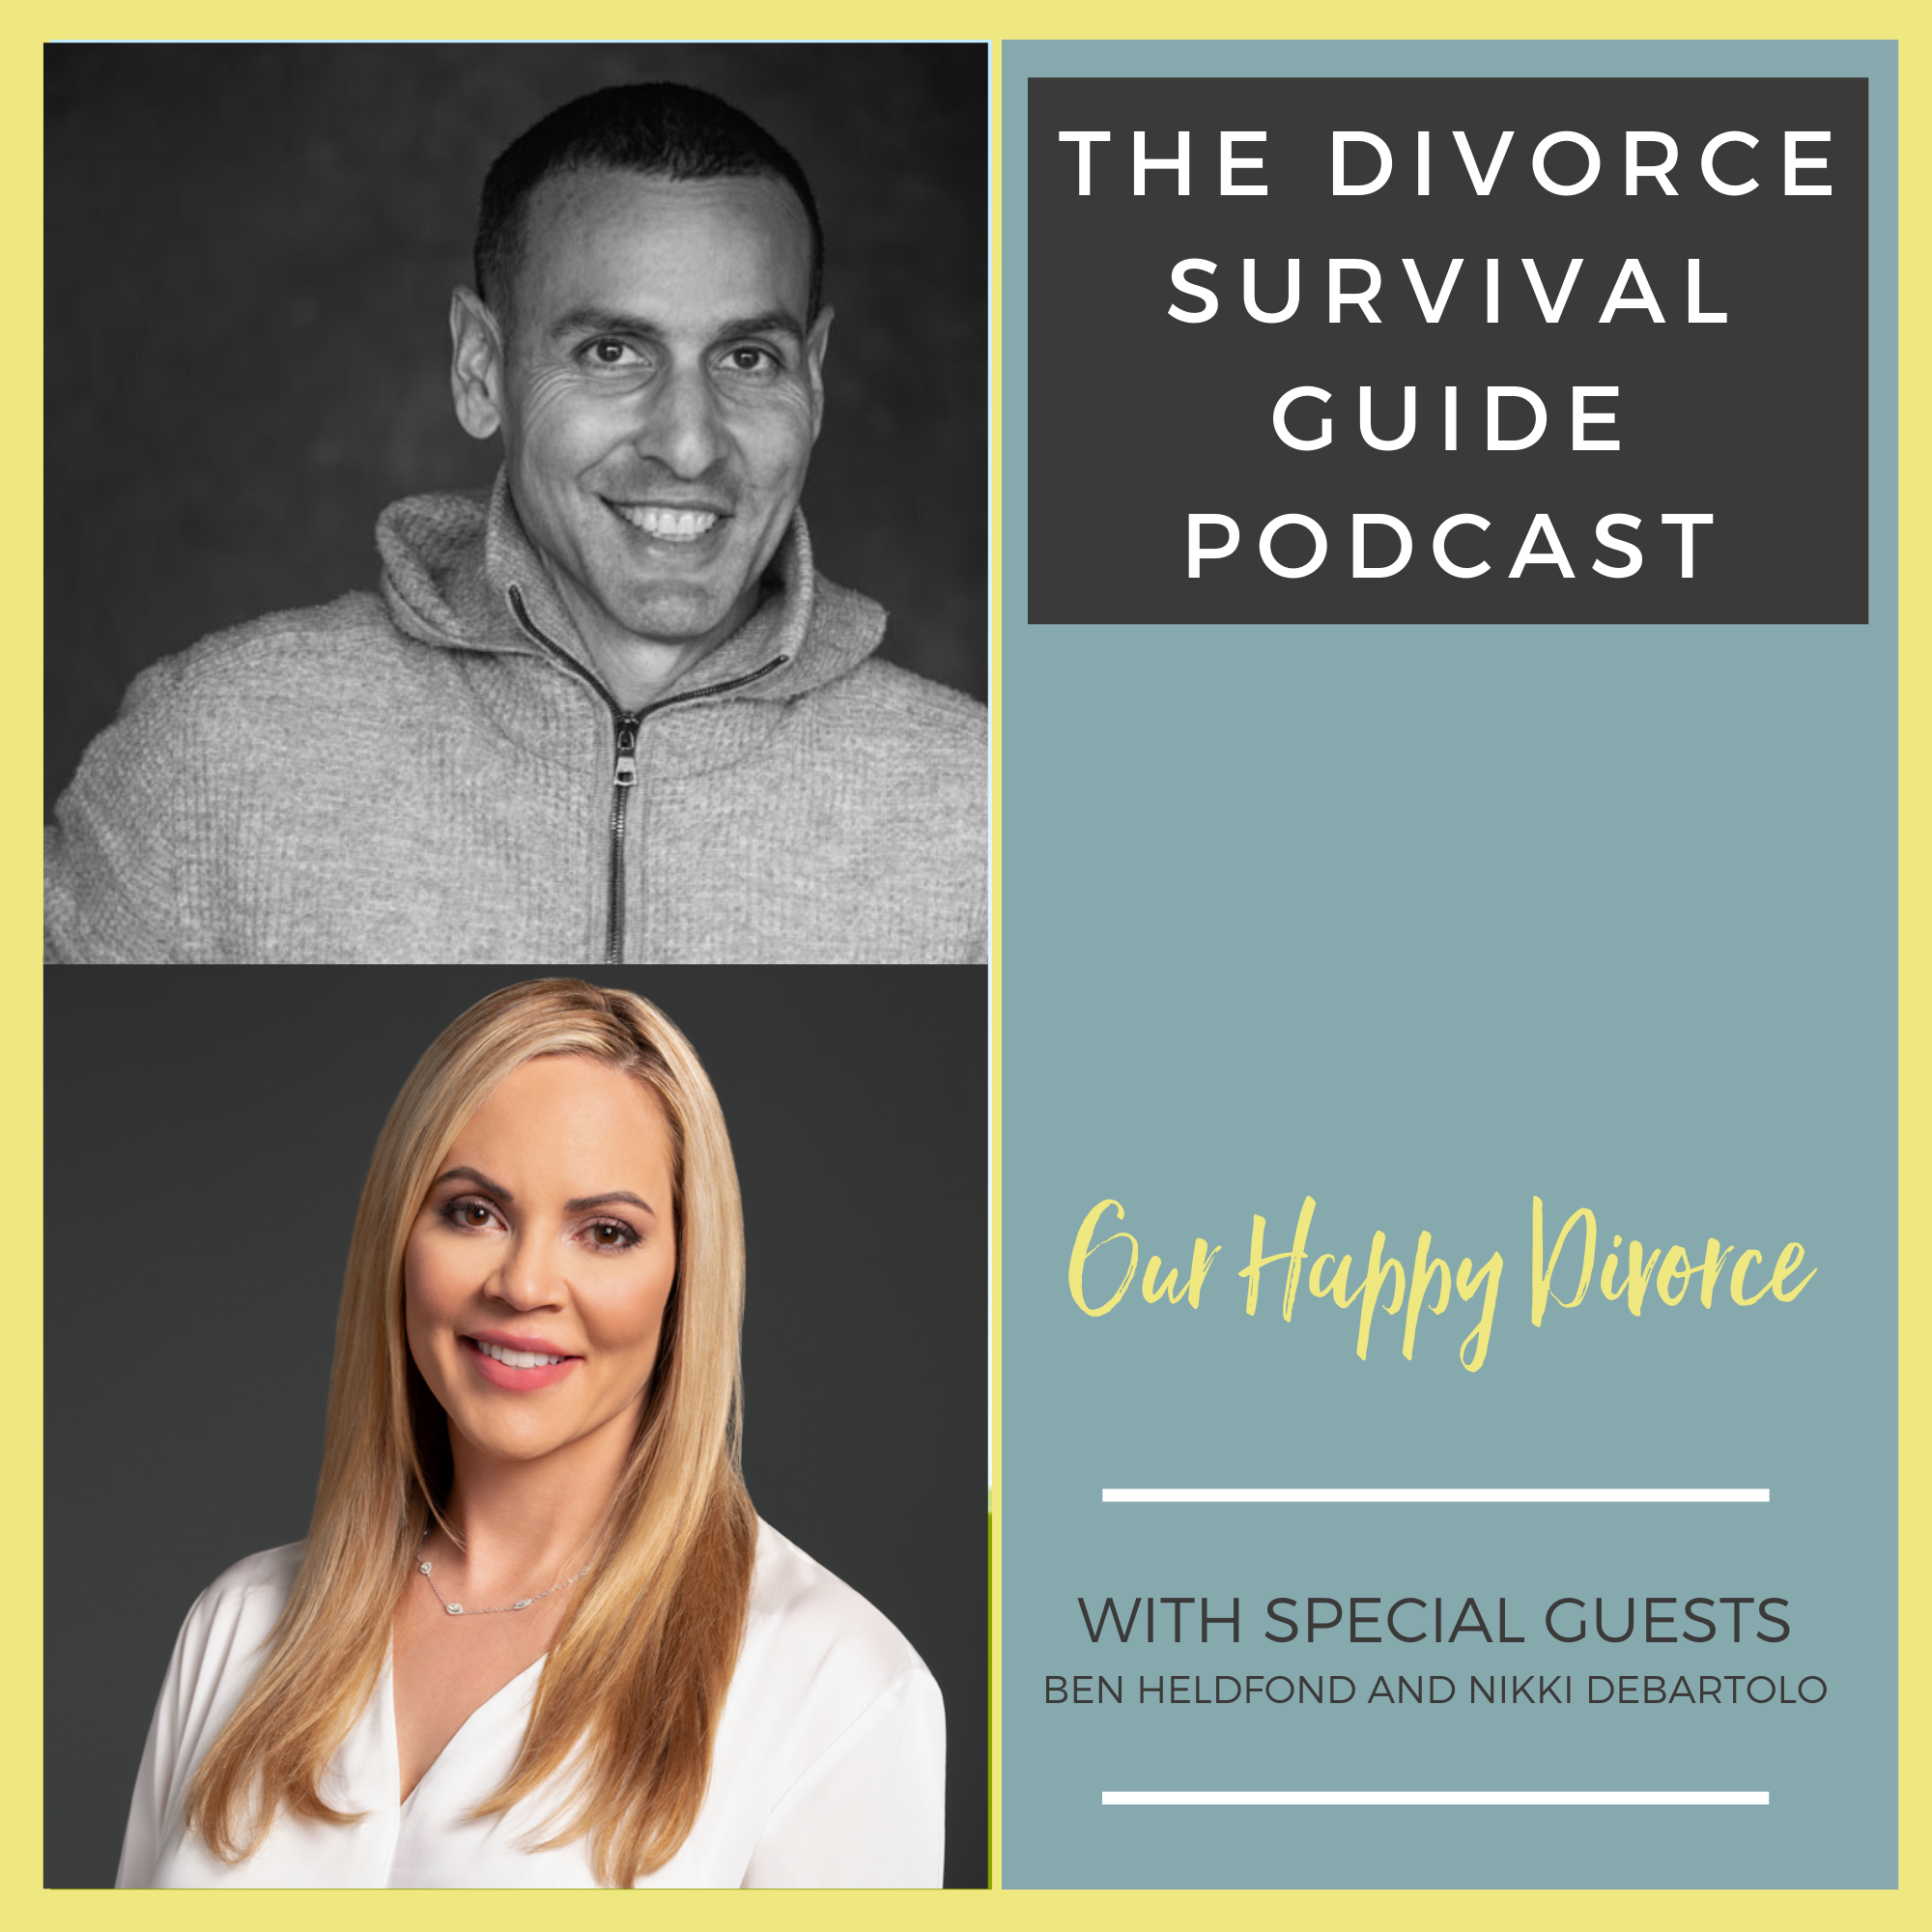 The Divorce Survival Guide Podcast - Our Happy Divorce with Ben Heldfond and Nikki DeBartolo